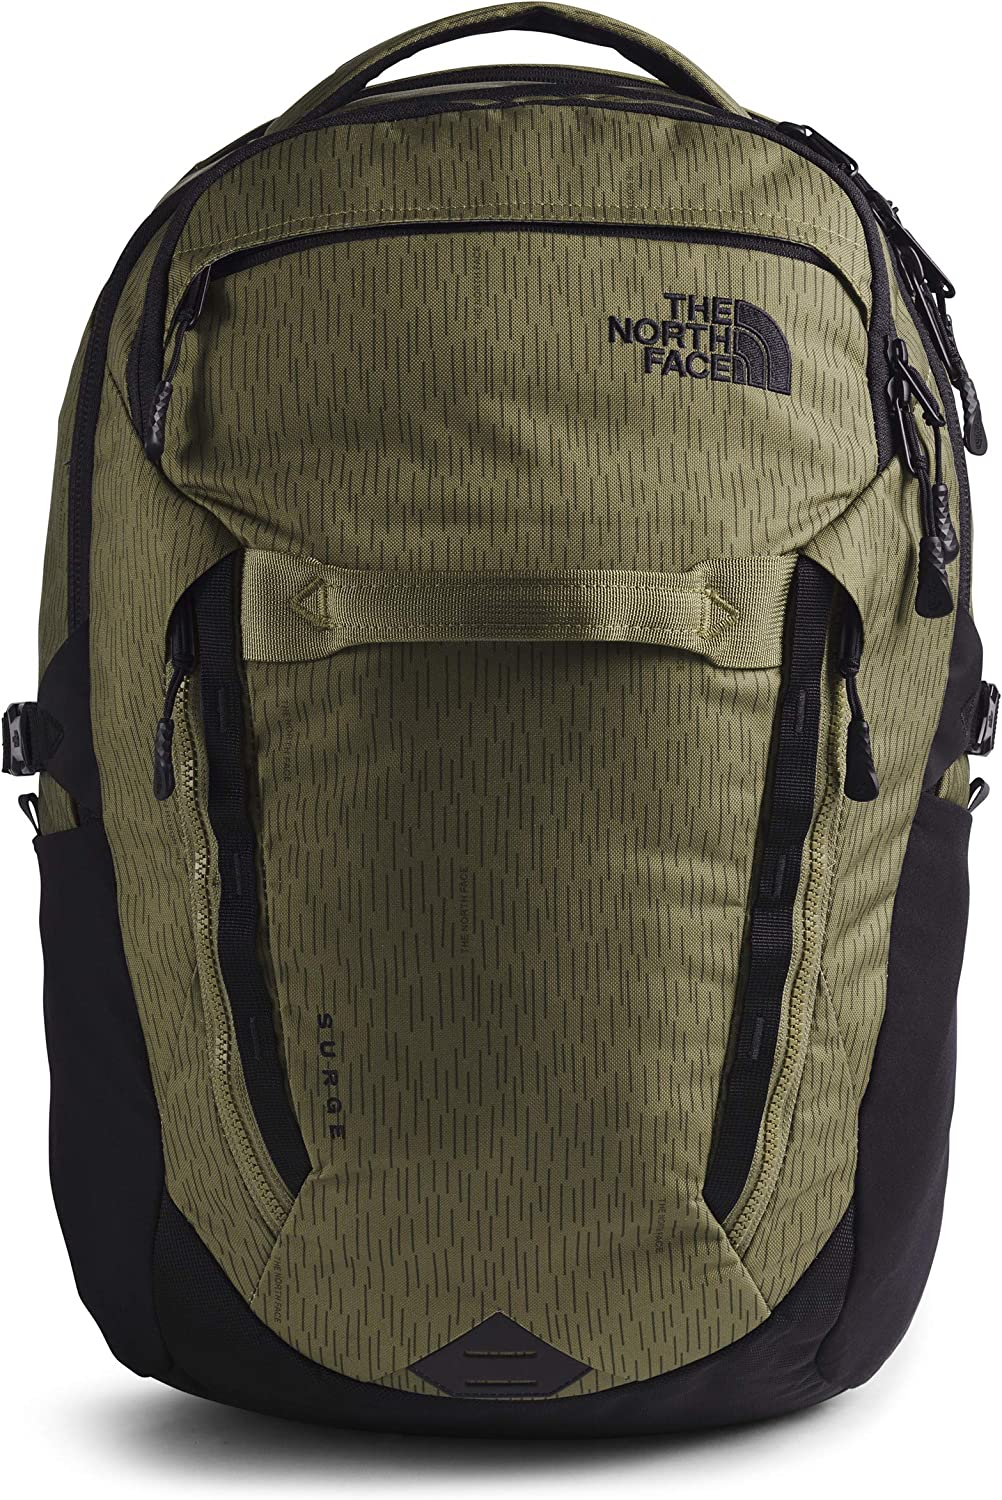 The North Face Surge Backpack Ranking specialty shop TOP1